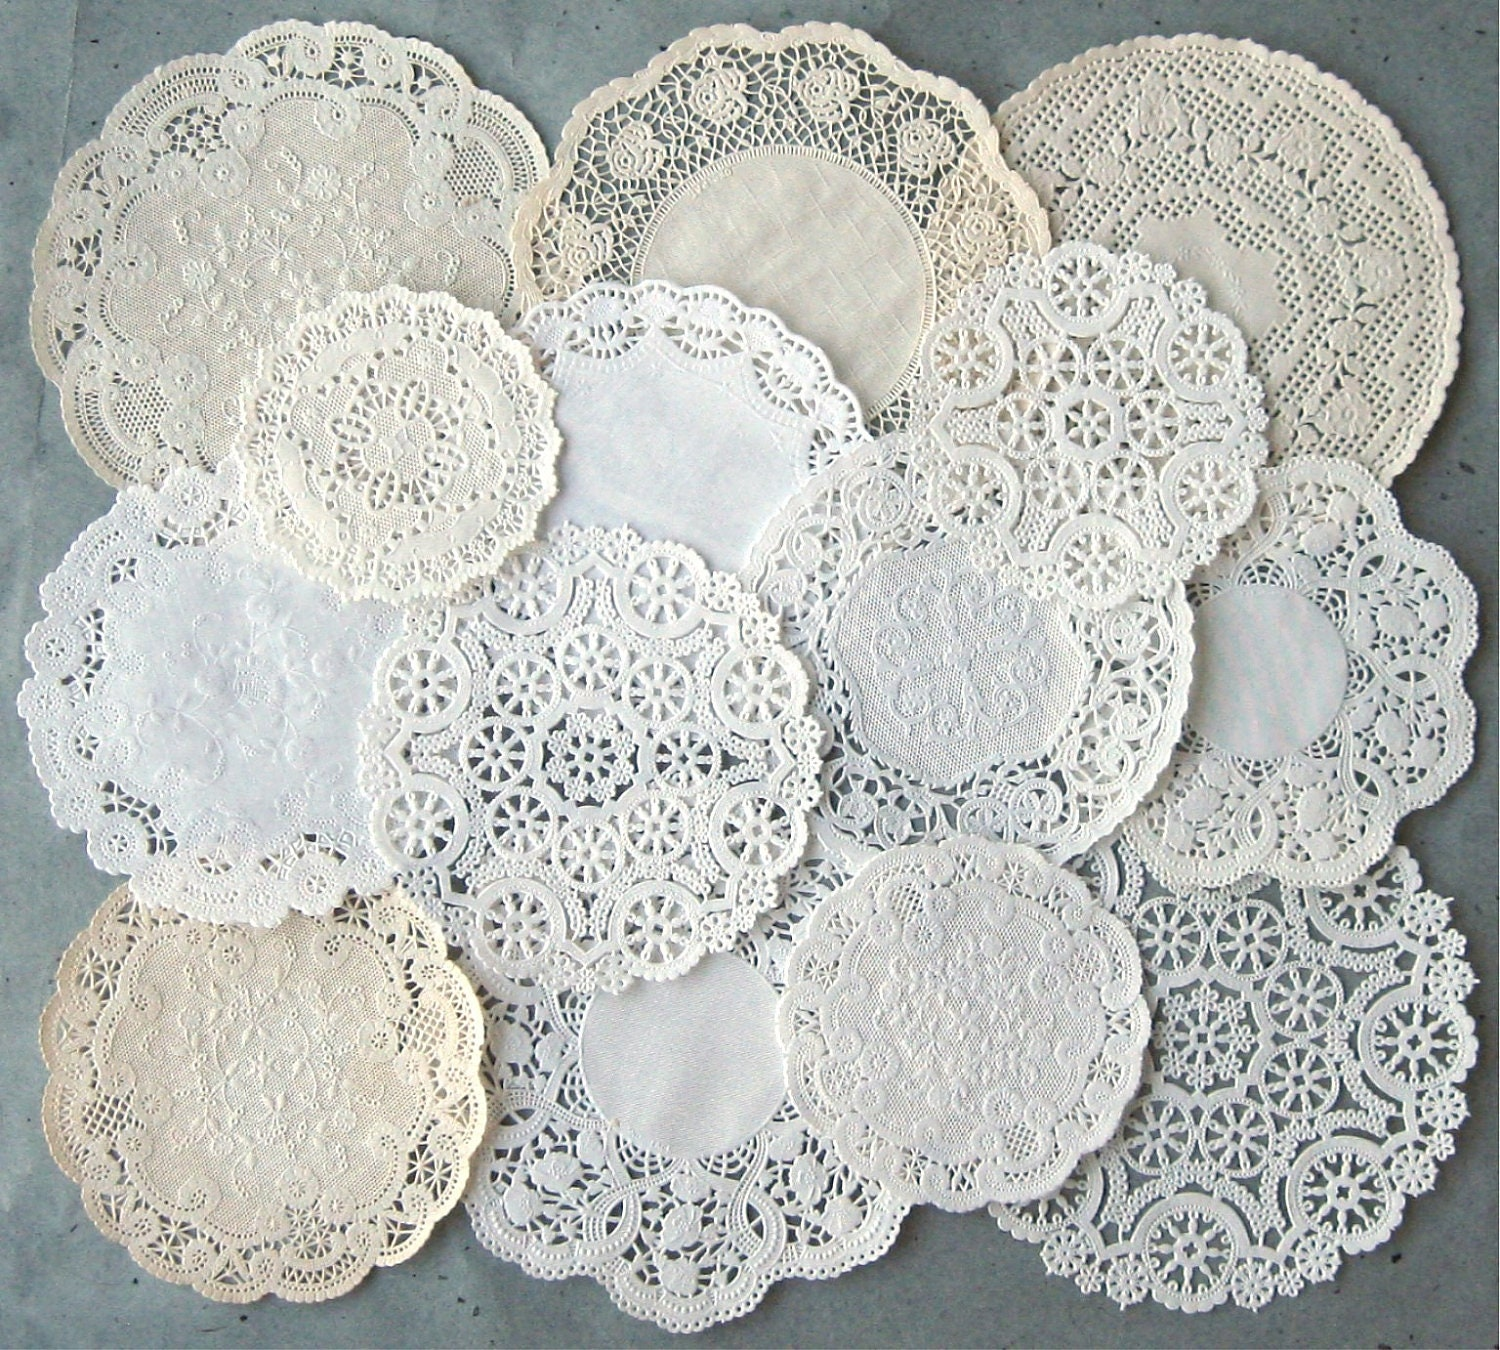 paper doilies where to buy The secret weapon in your diy wedding toolkit: lace paper doilies and ideas to make doily chandeliers, doily wrapping paper, doily garlands.